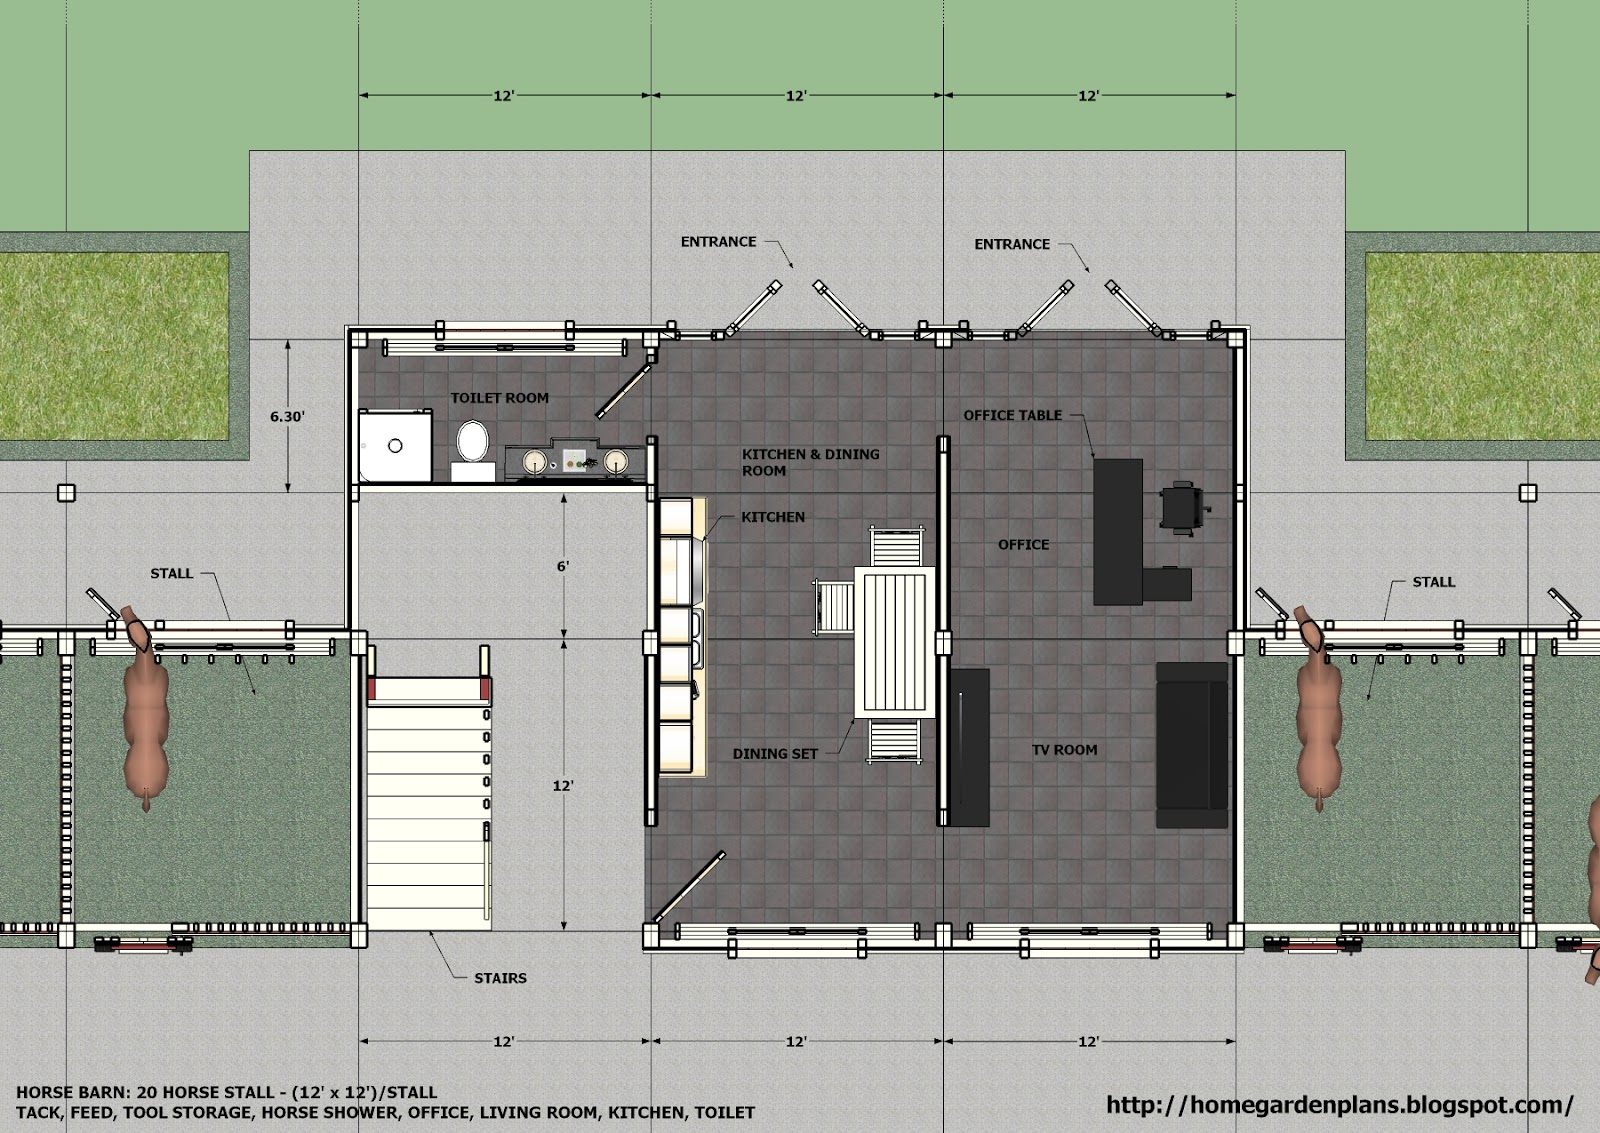 barn plans stable designs building plans for horse - HD1600×1133